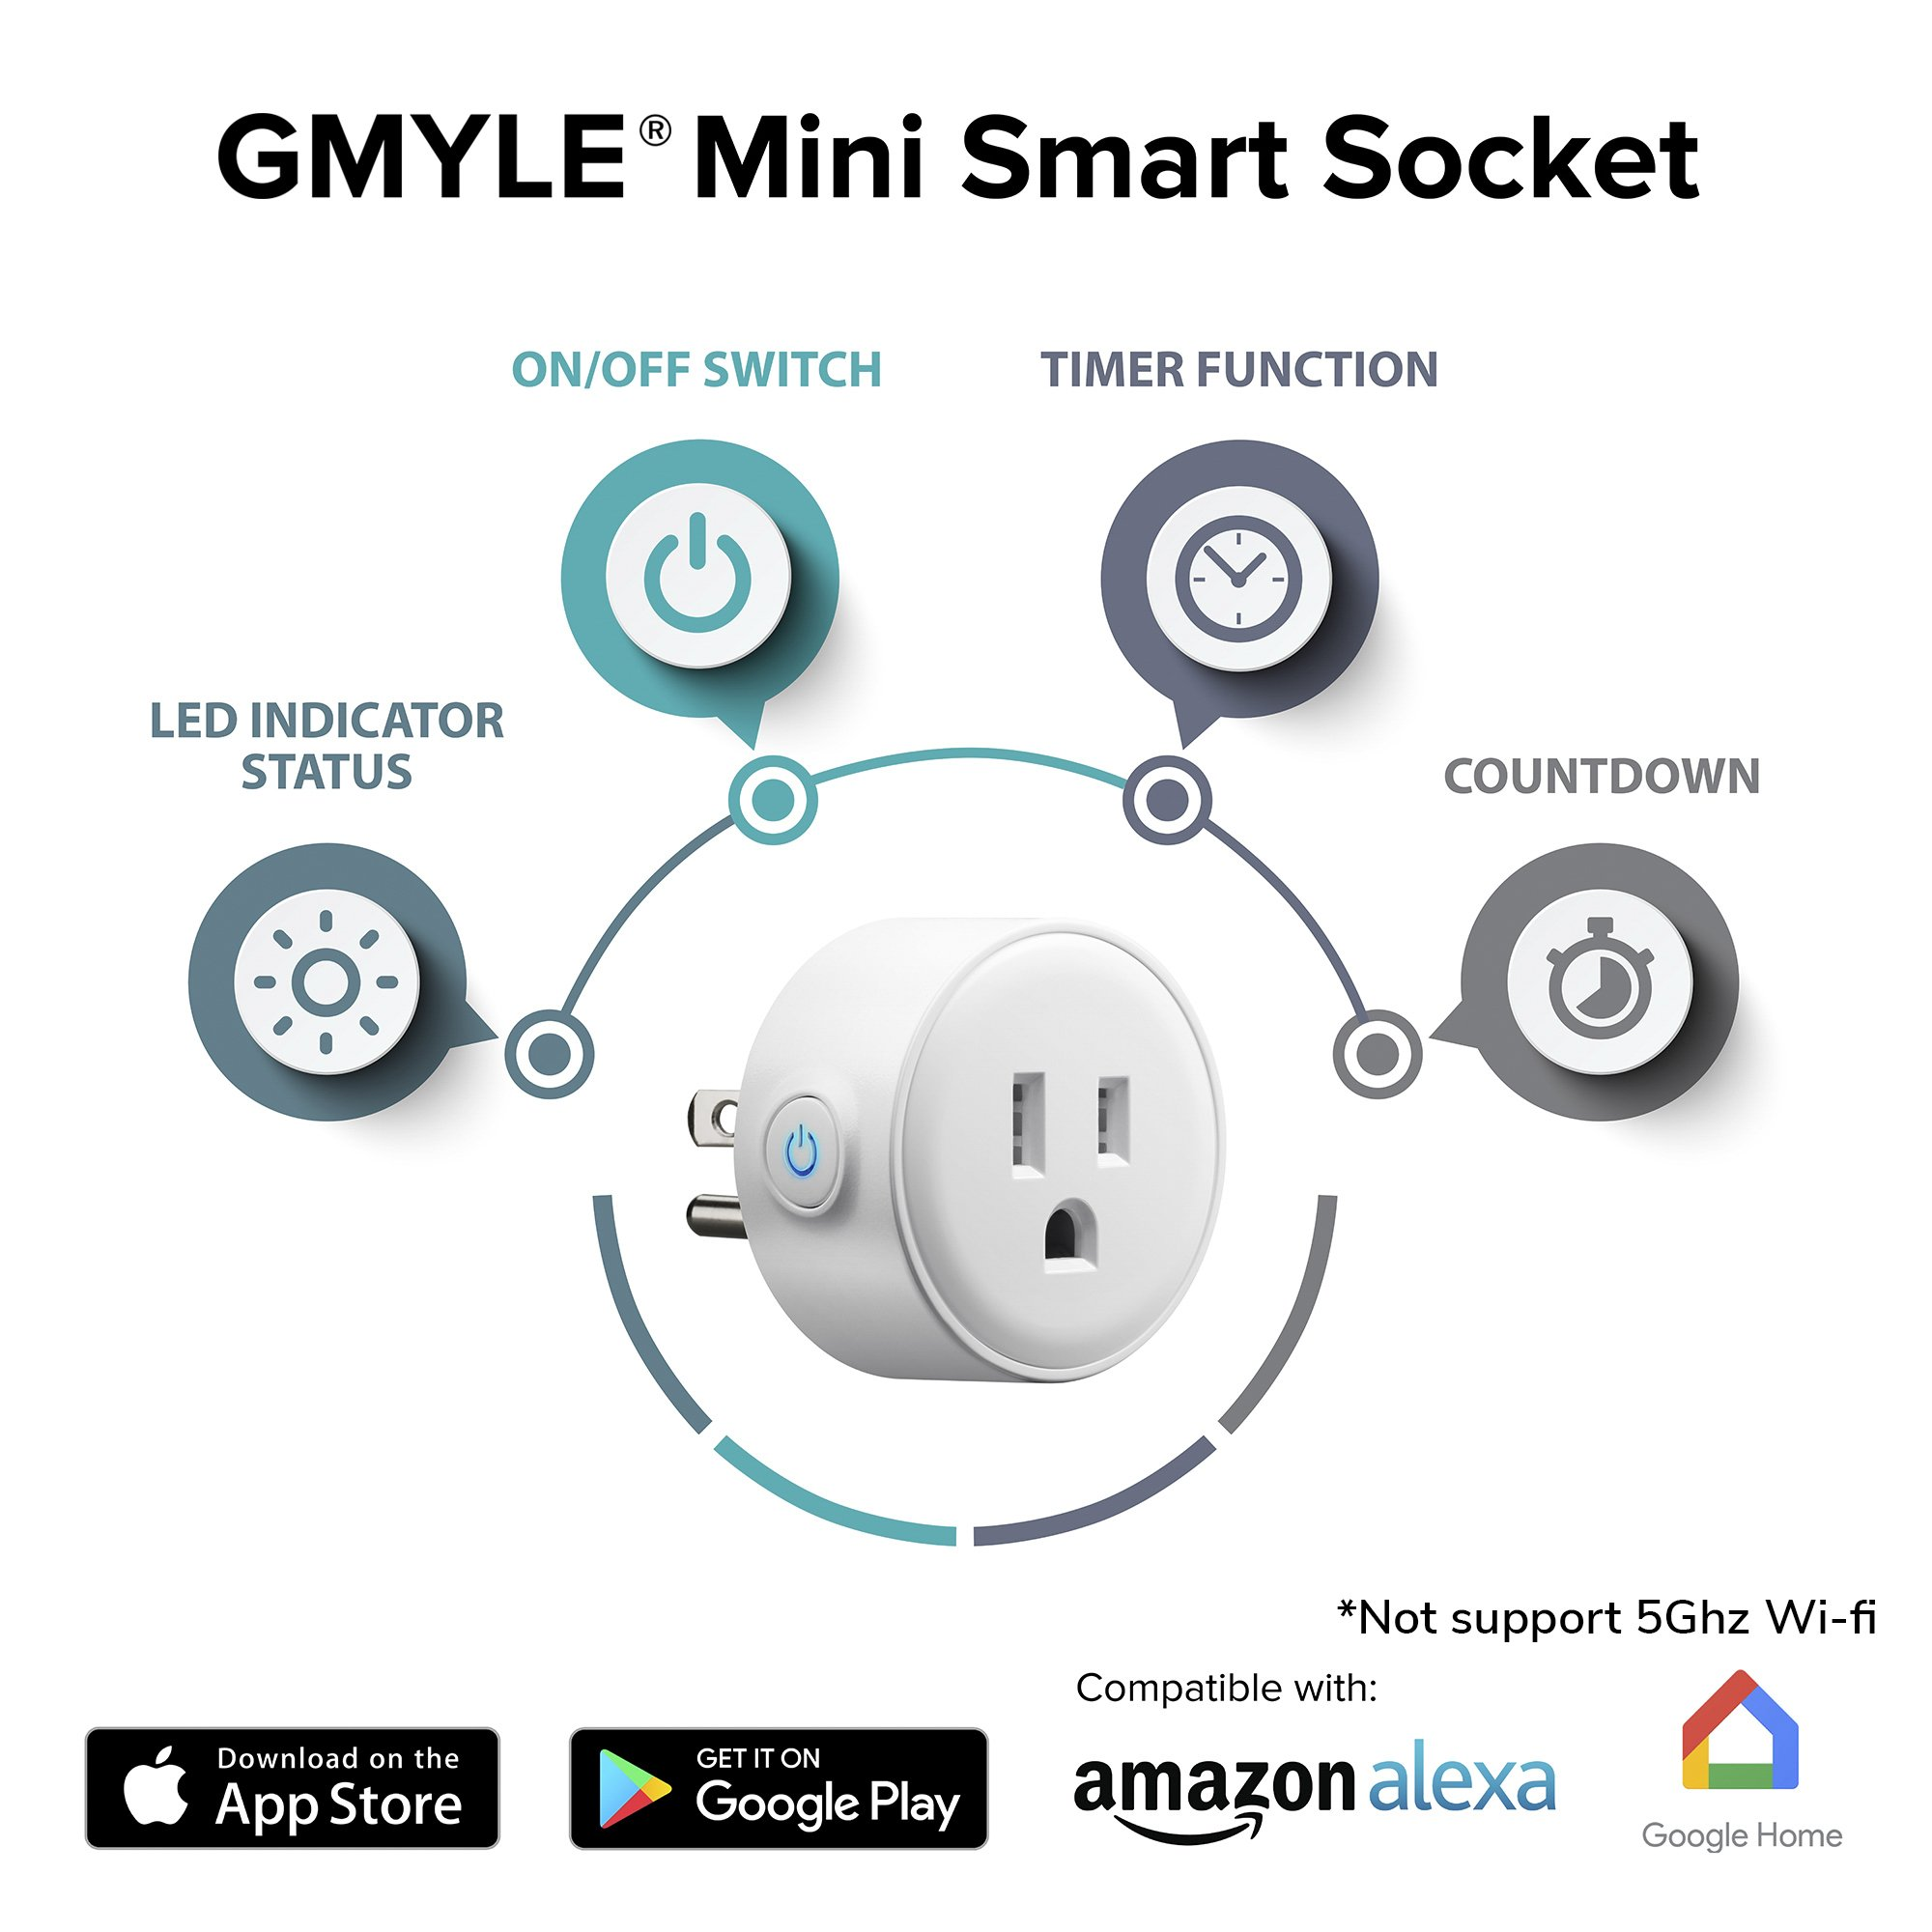 GMYLE 4 Pack Wifi Smart Plug Mini Outlet Power Control Socket, Remote Control Your Electric Devices from Anywhere, No Hub Required, Work with Amazon Alexa Echo Dot & Google Home, White by GMYLE (Image #2)